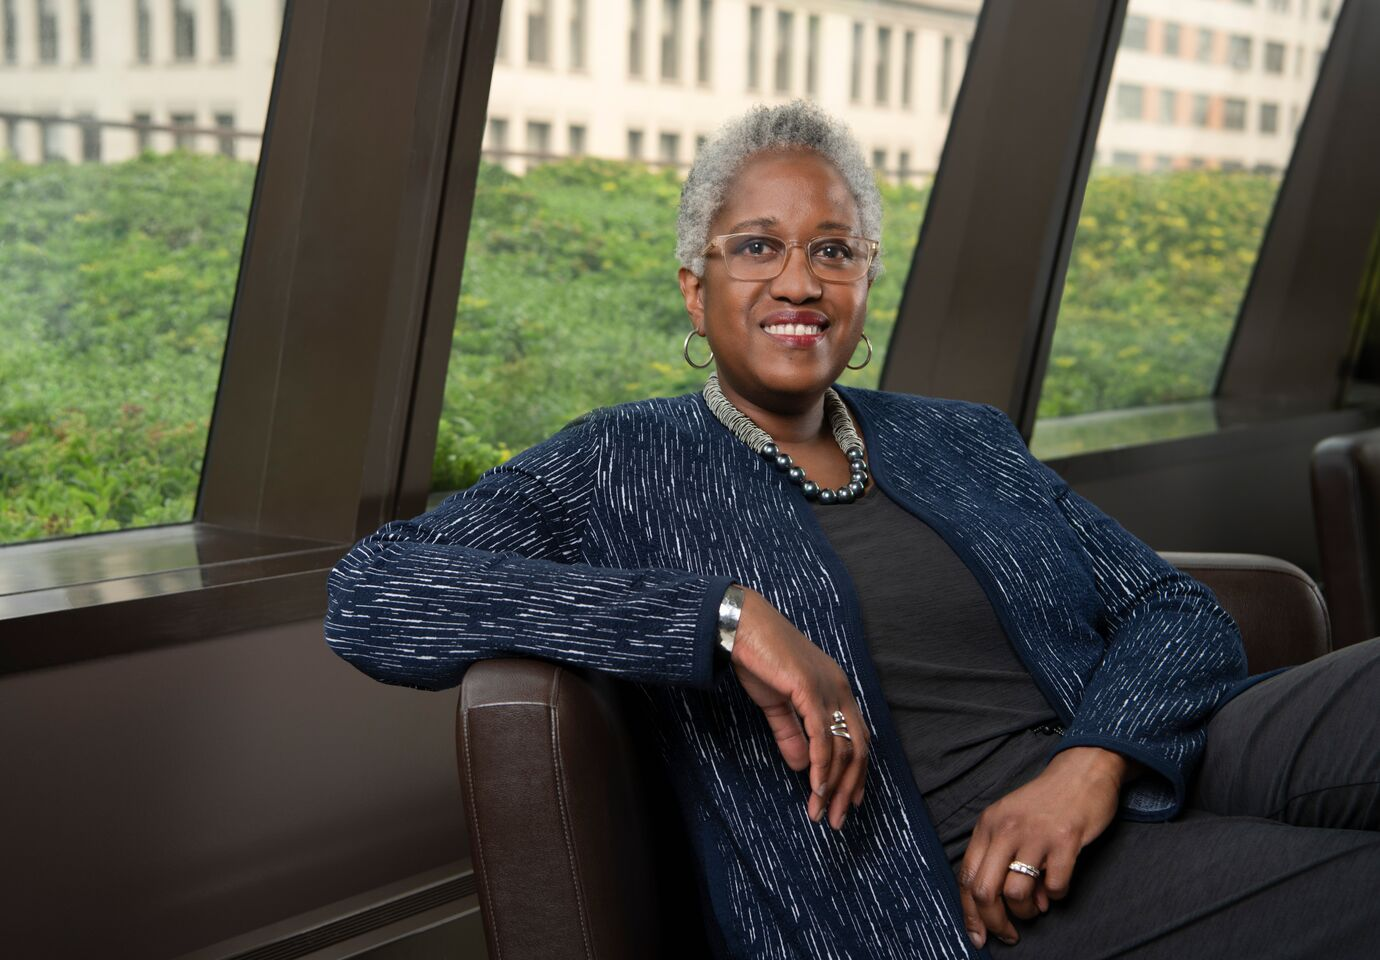 Dr. Renée T. White, the university's new Provost, has always been drawn to institutions with principles grounded in social justice